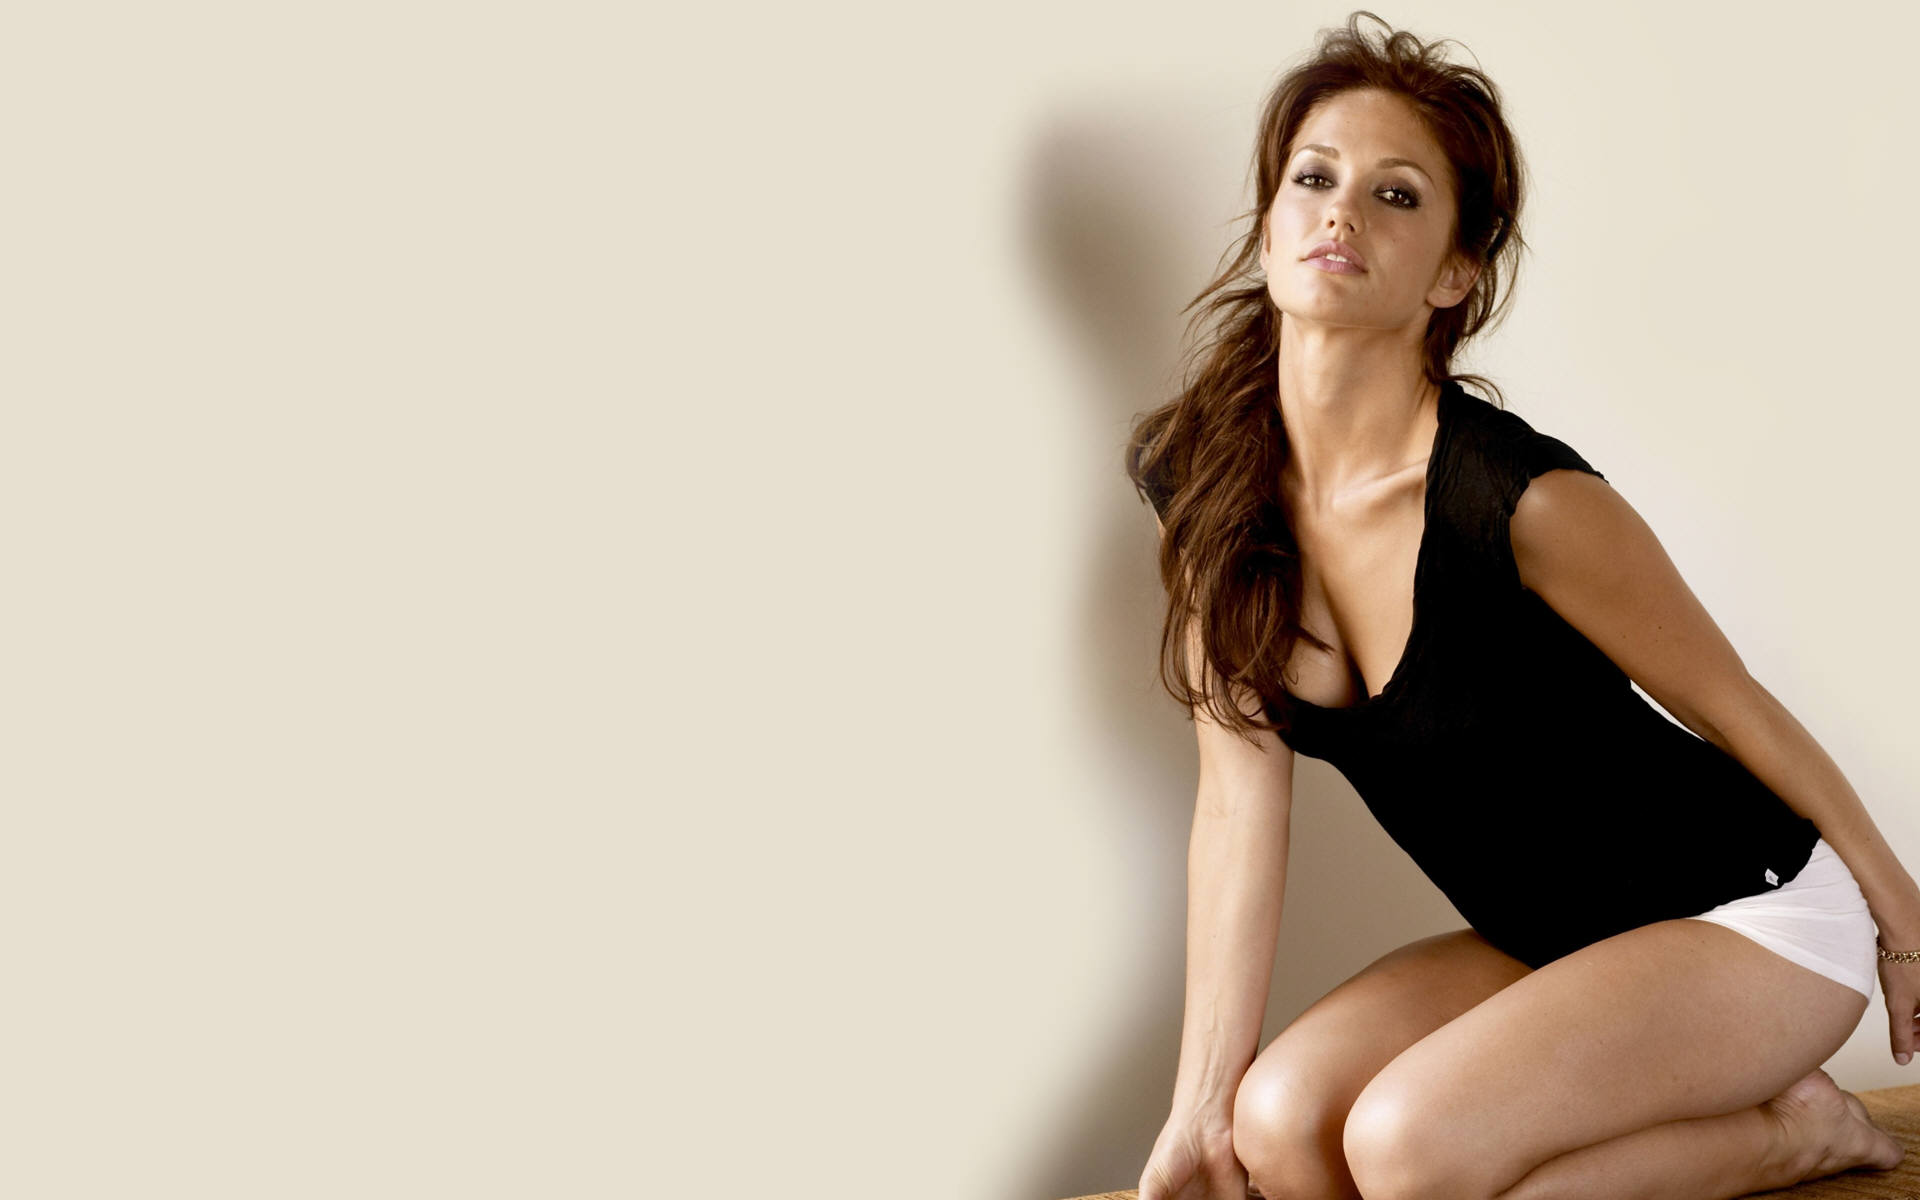 minka kelly wallpapers high quality | download free